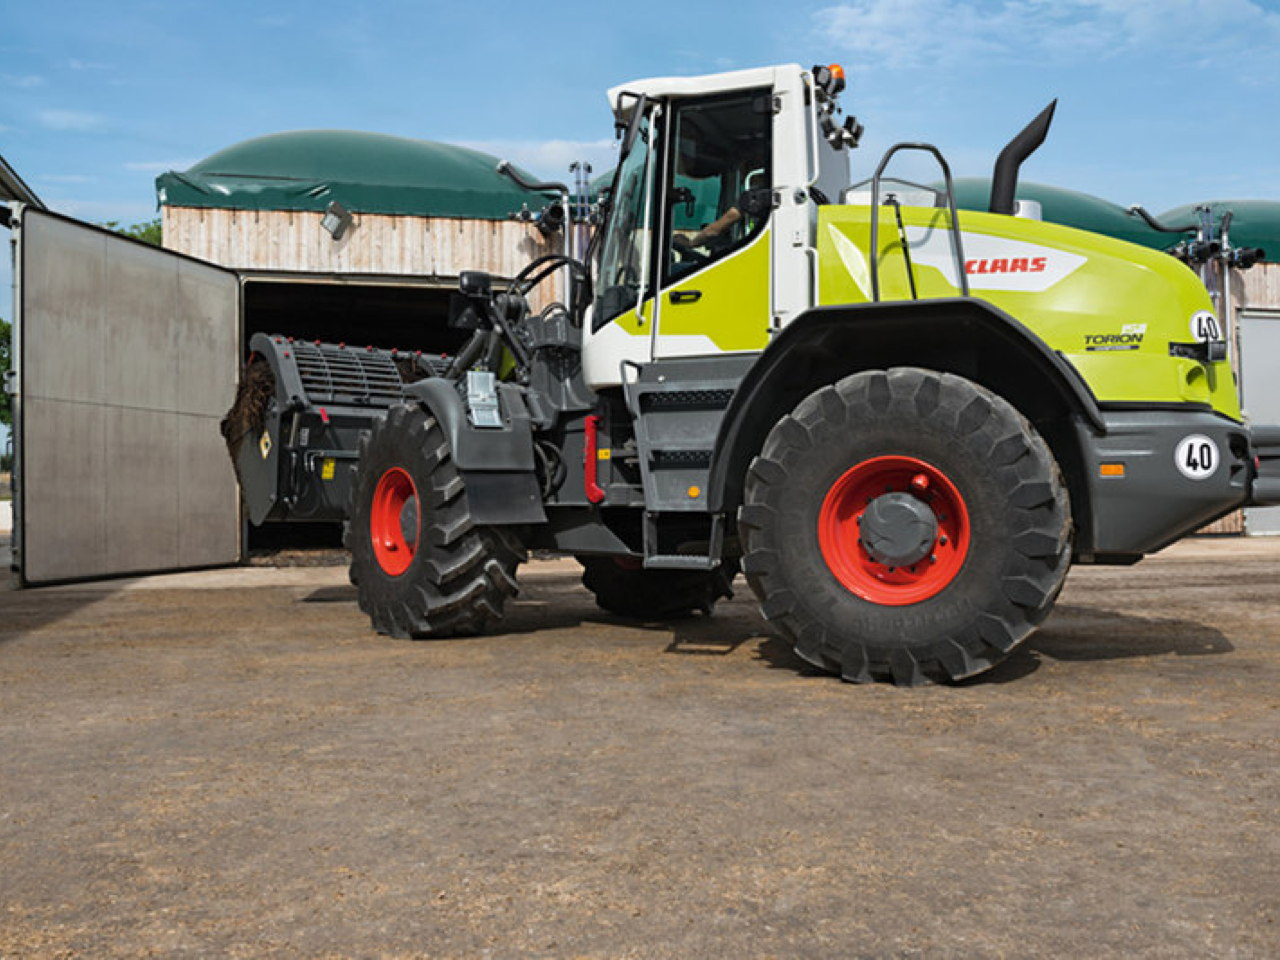 Claas Torion 1914-1177 Torion 1177